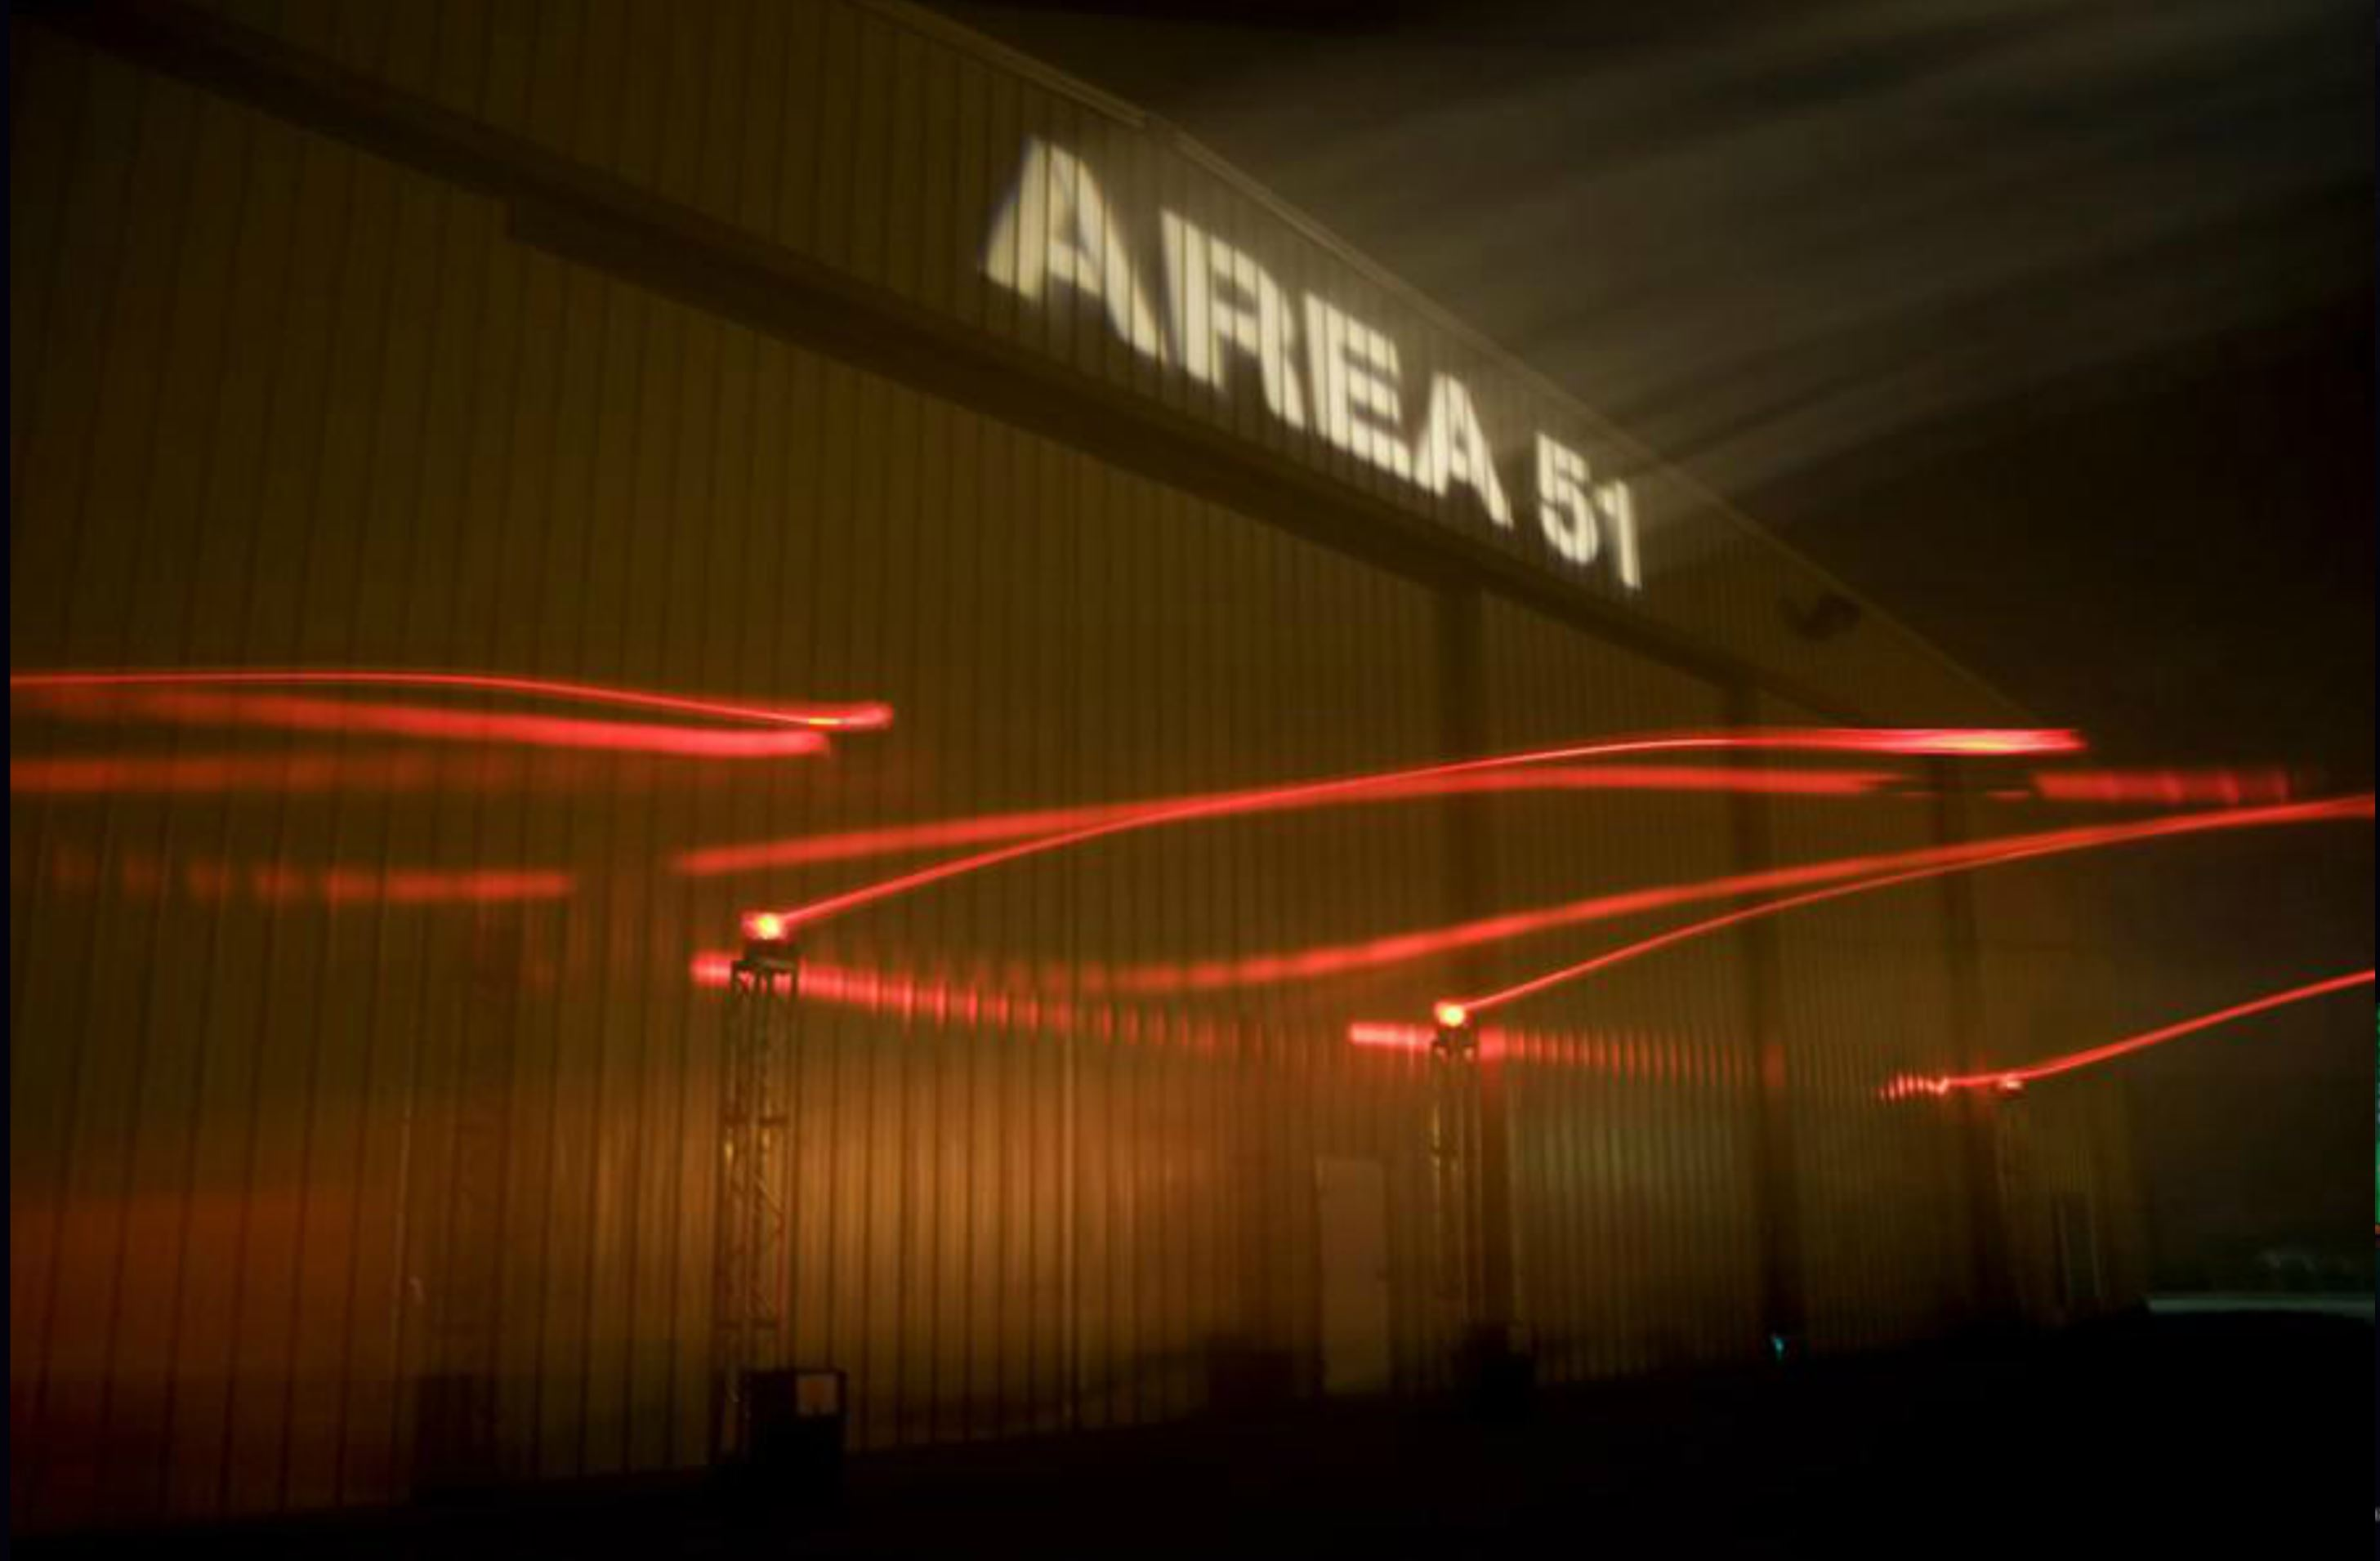 AREA 51 Lighting and Set Design